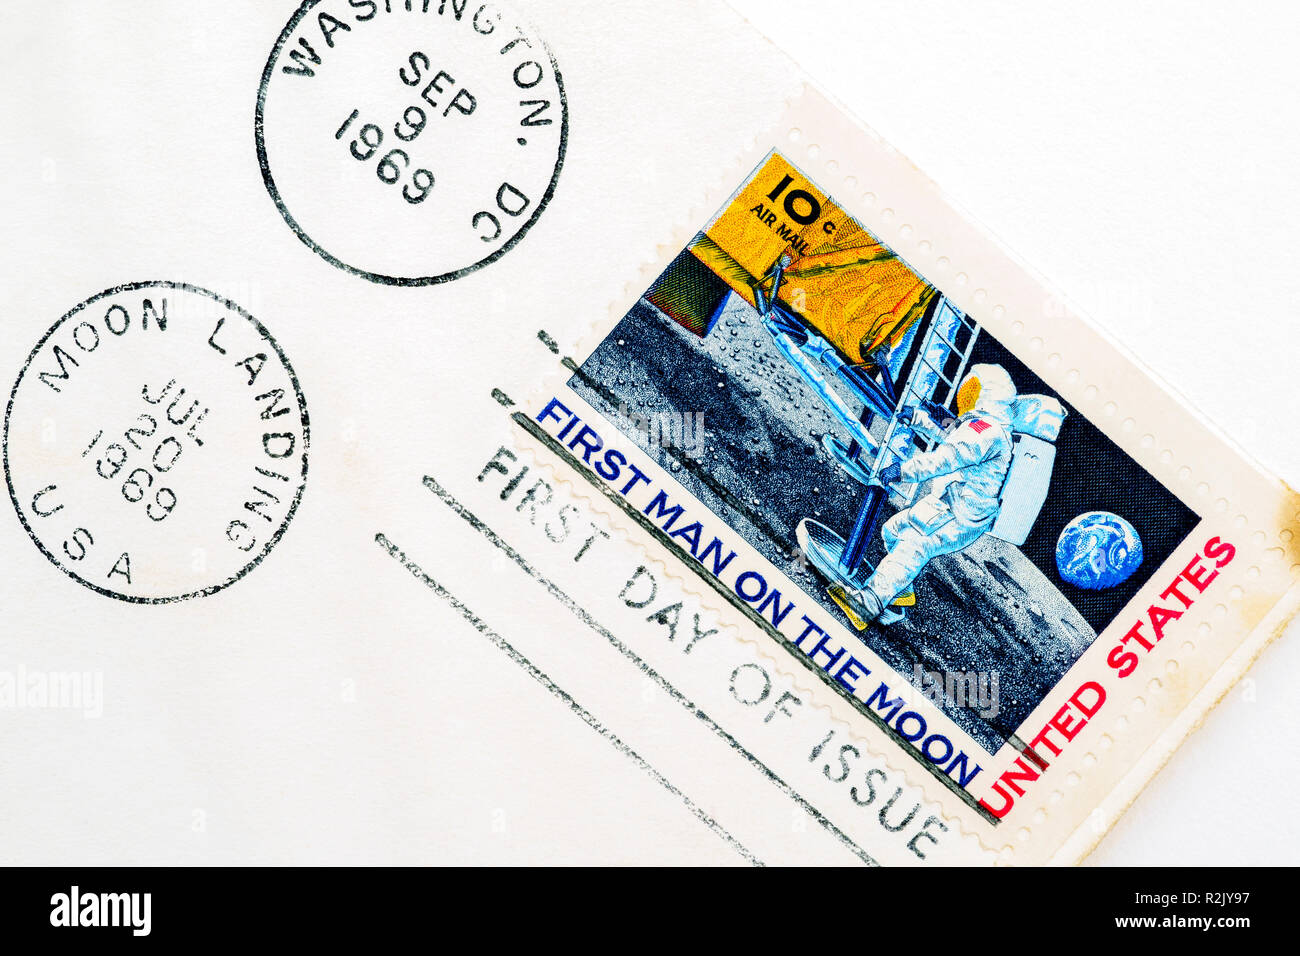 1969 first moon landing commemorative stamp on first day of tissue envelope Stock Photo